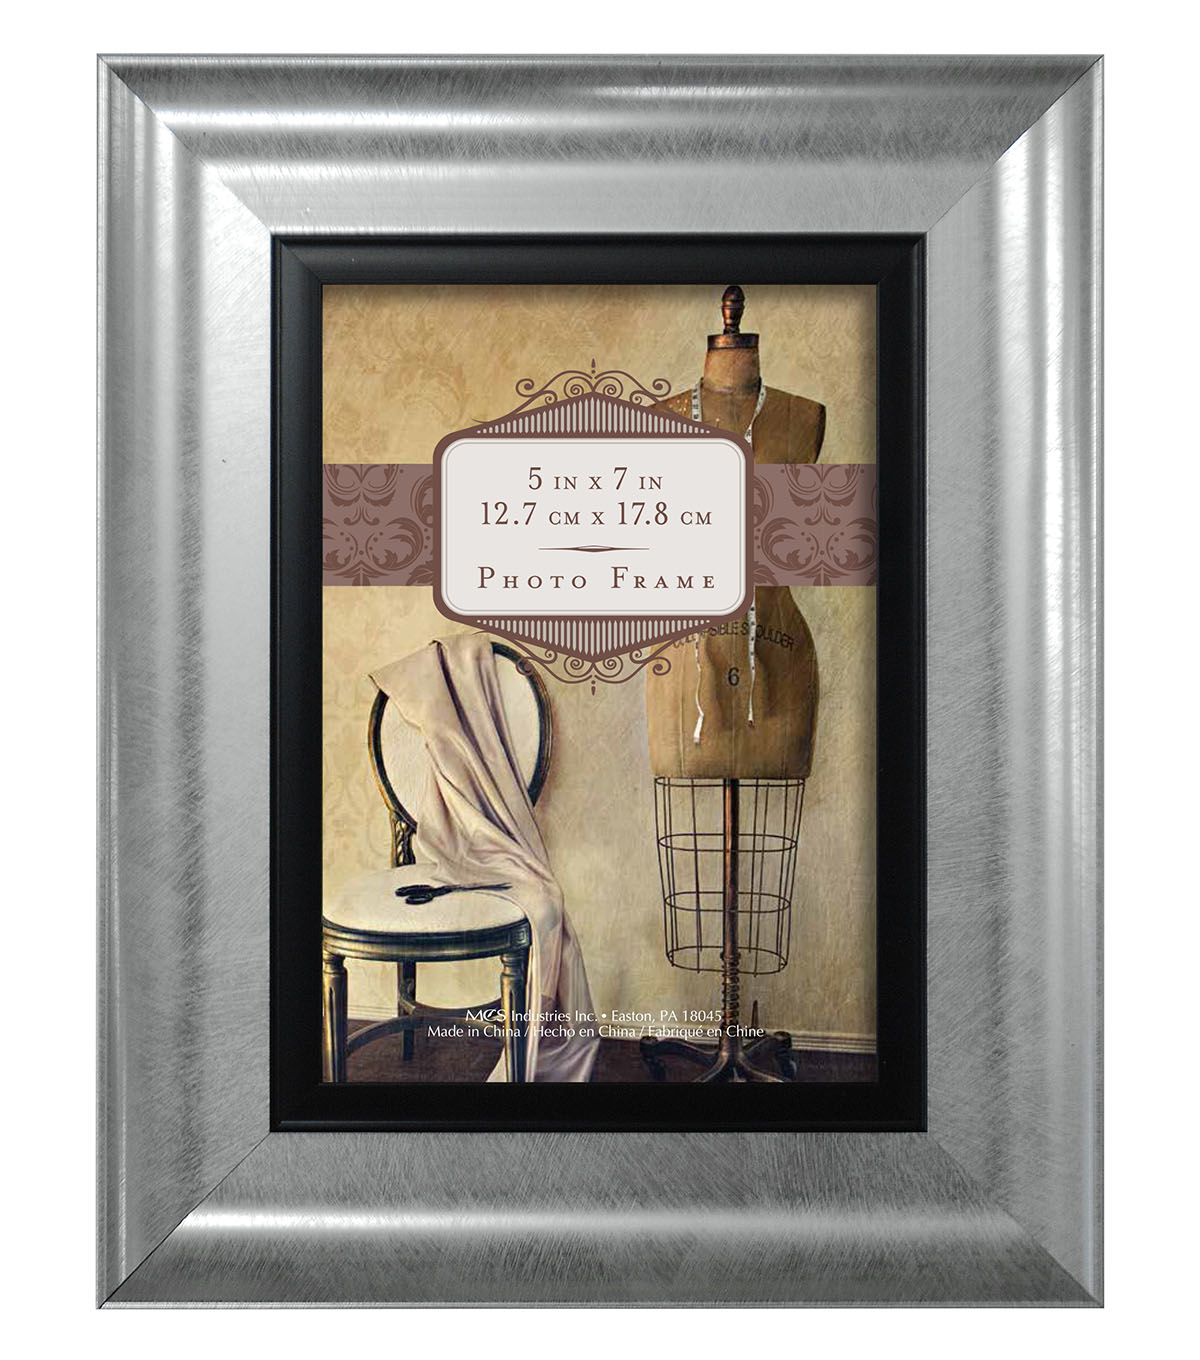 Tabletop Frame 5X7-Wedded Bliss Silver Black